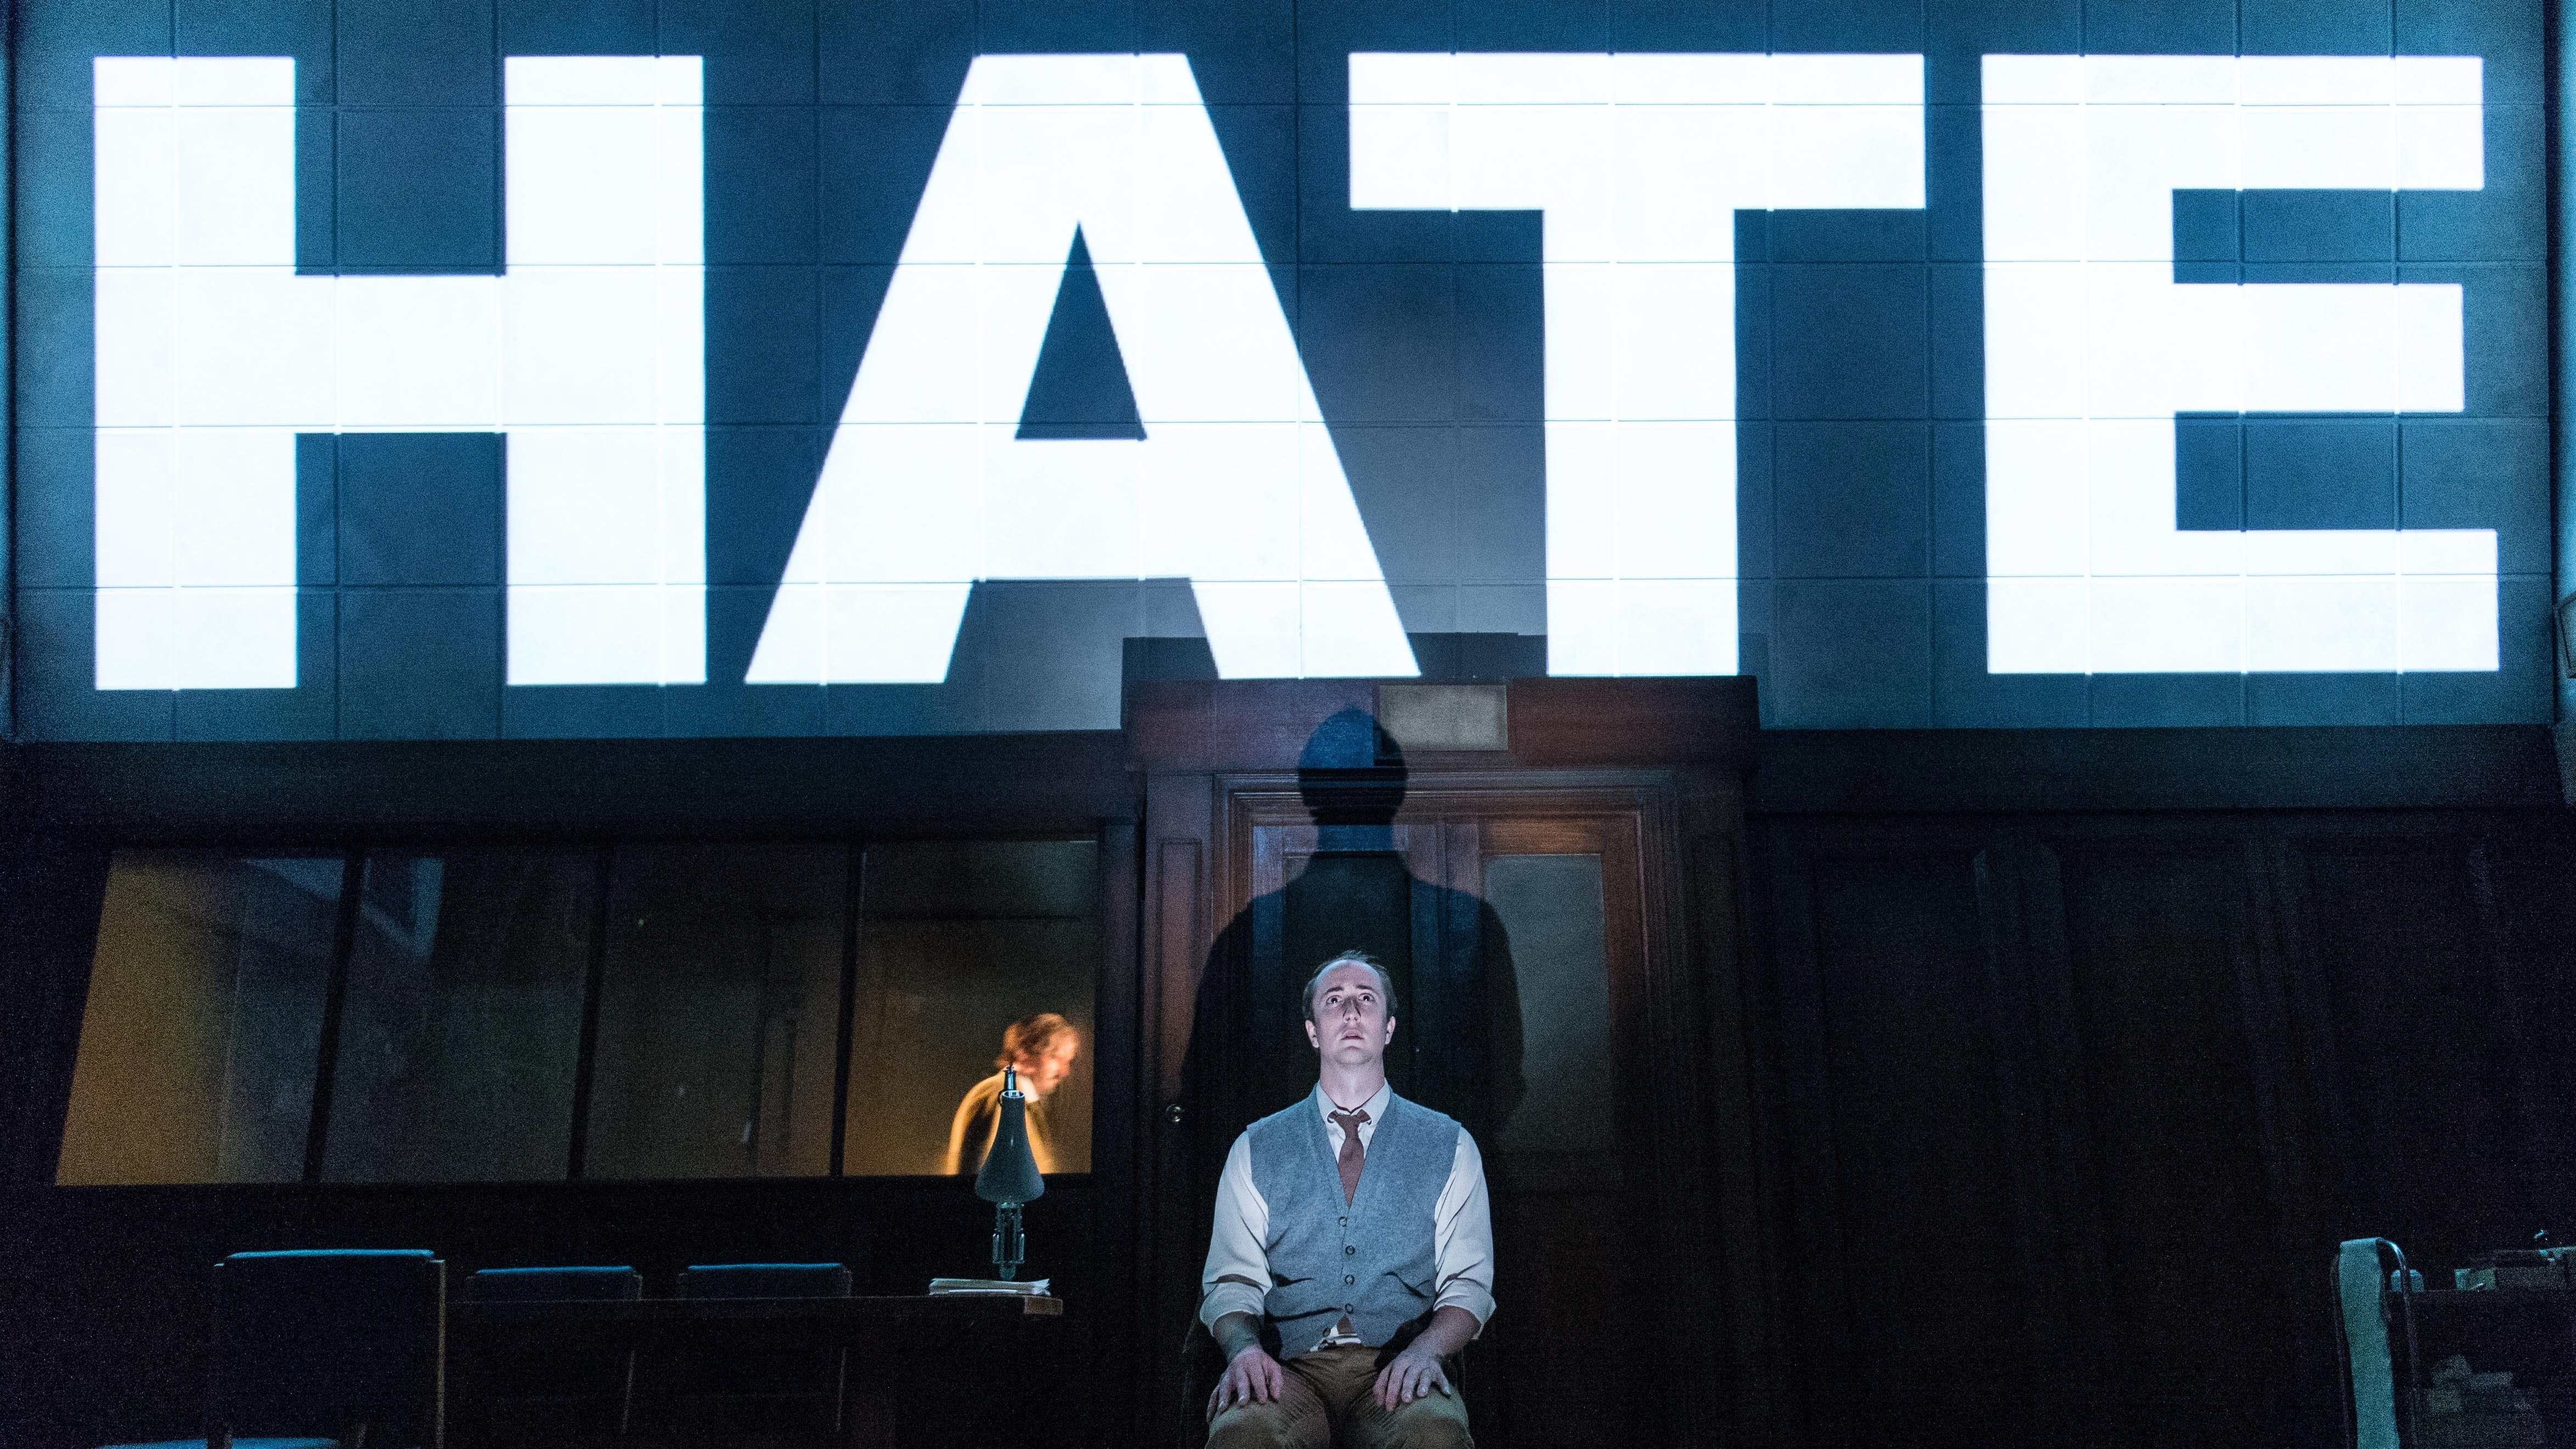 '1984' On Stage: Big Brother Is Still Watching You